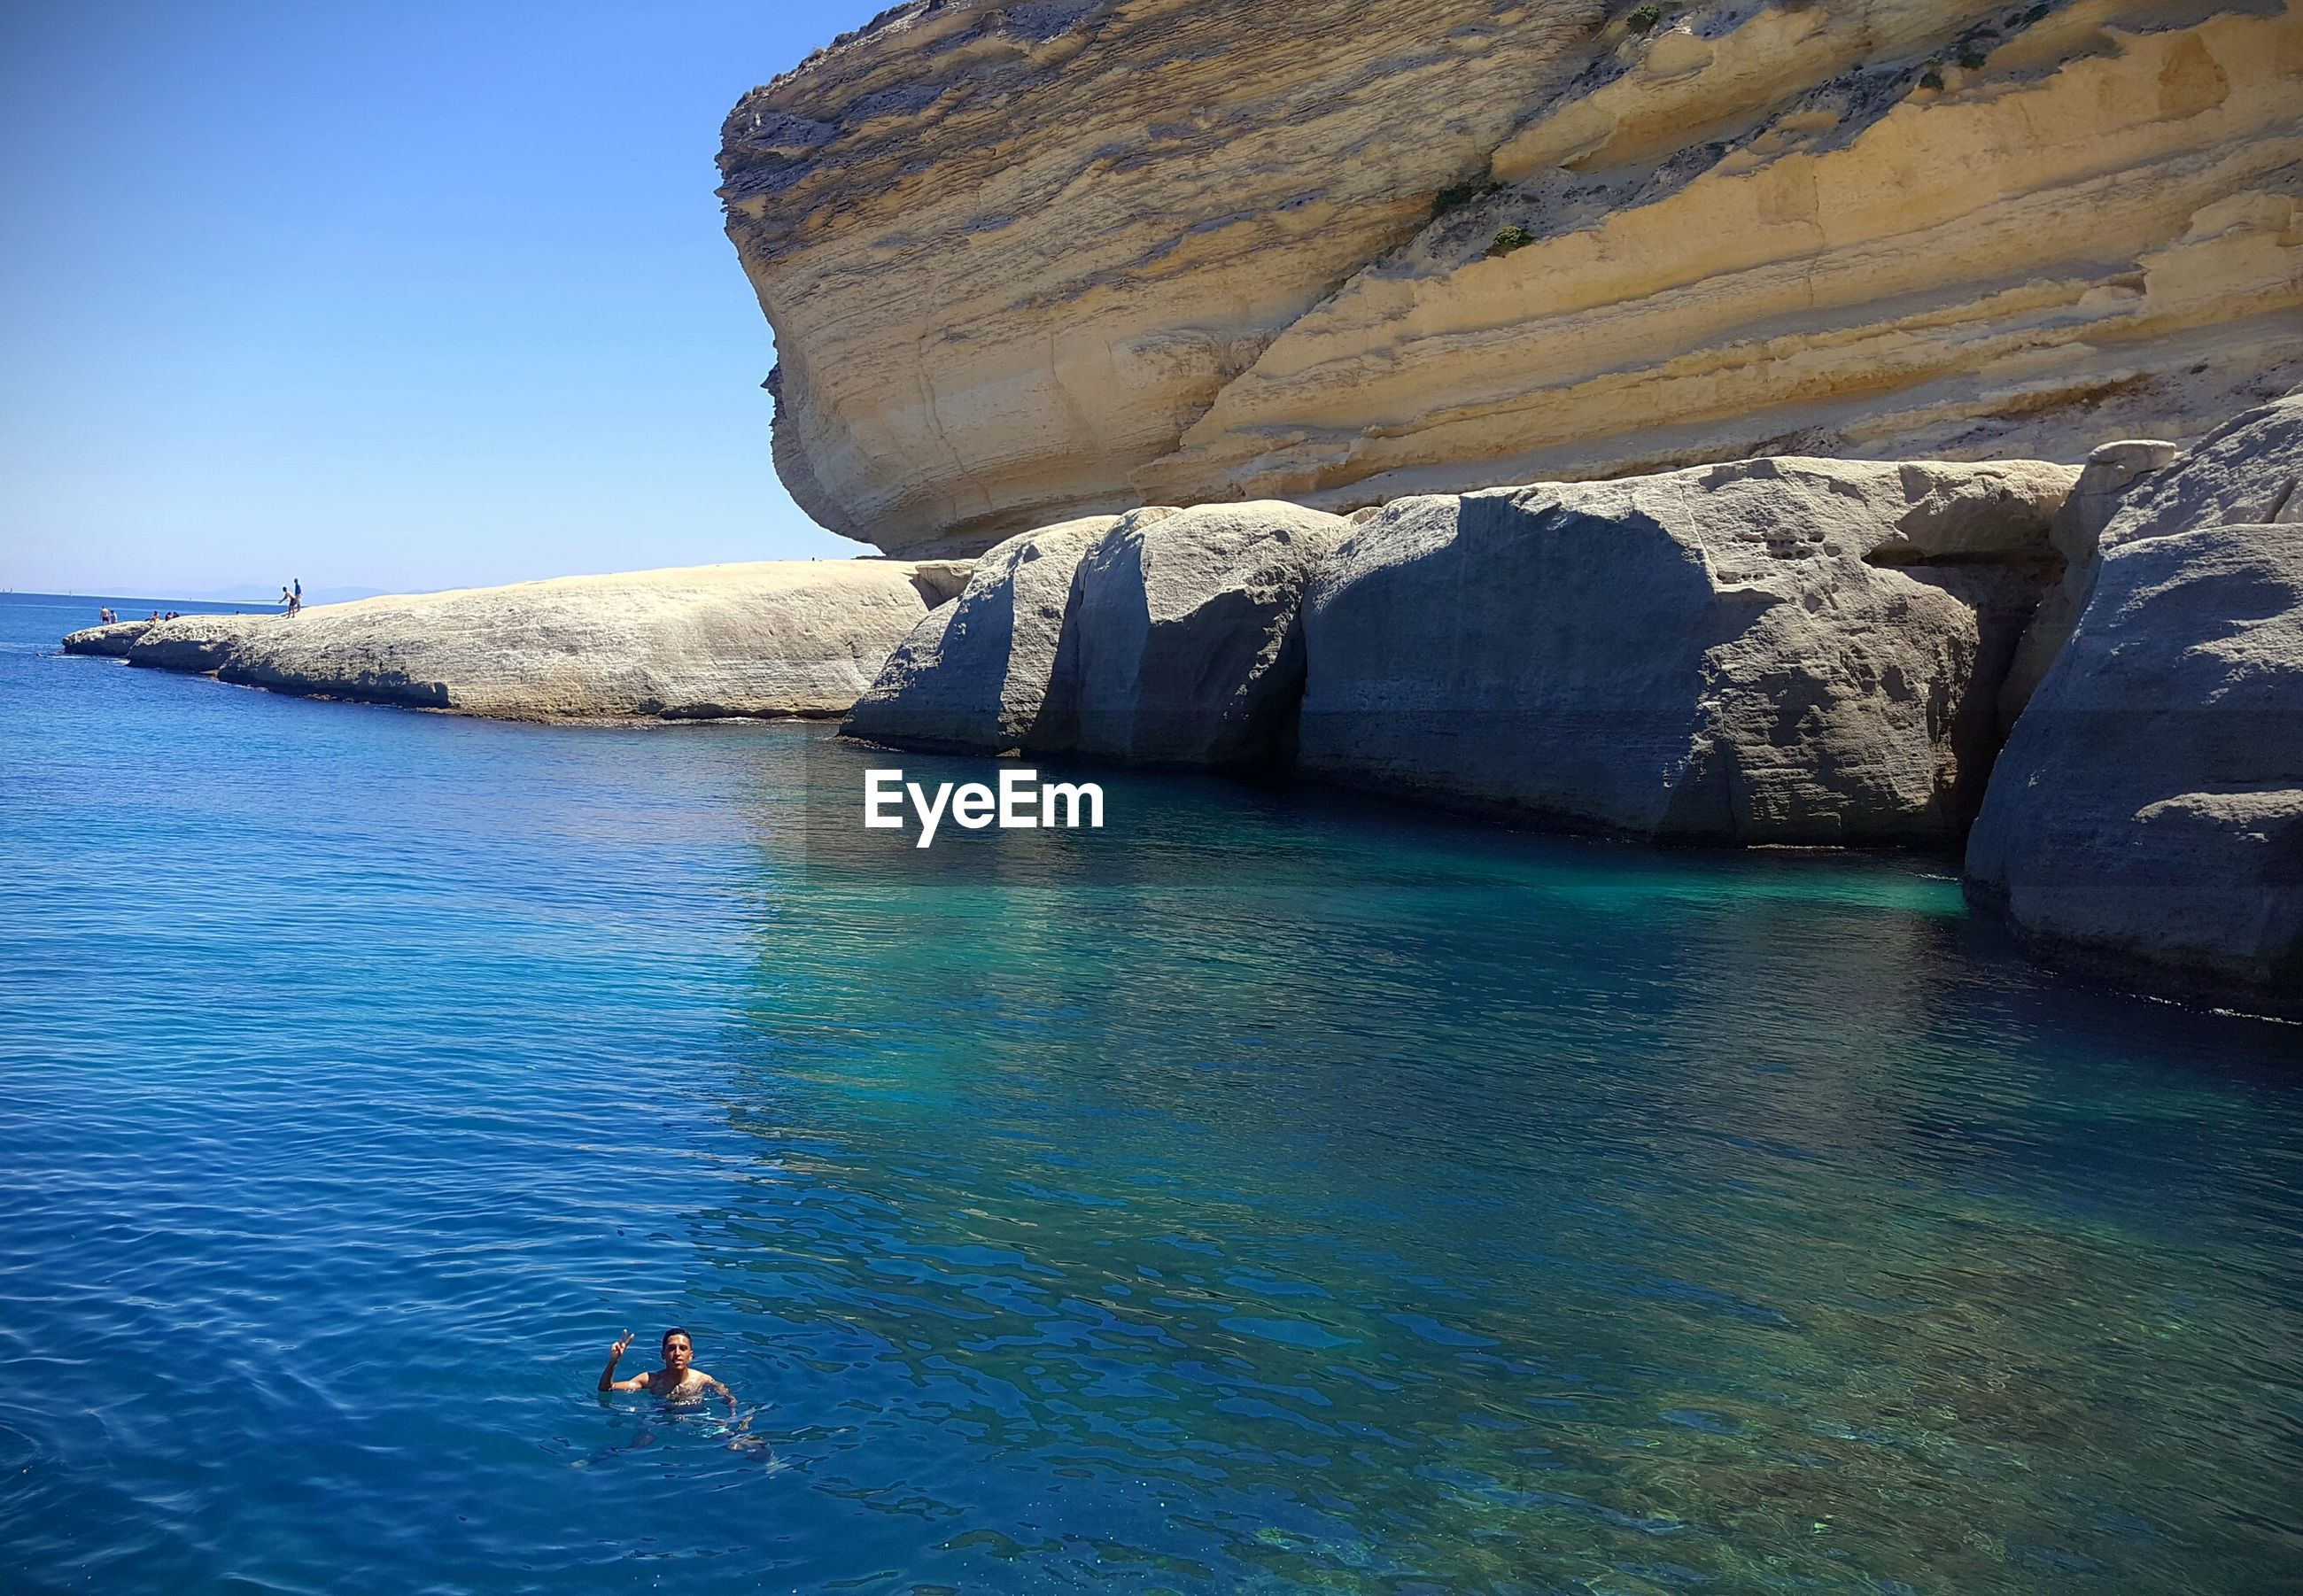 Man swimming in sea against rock formation